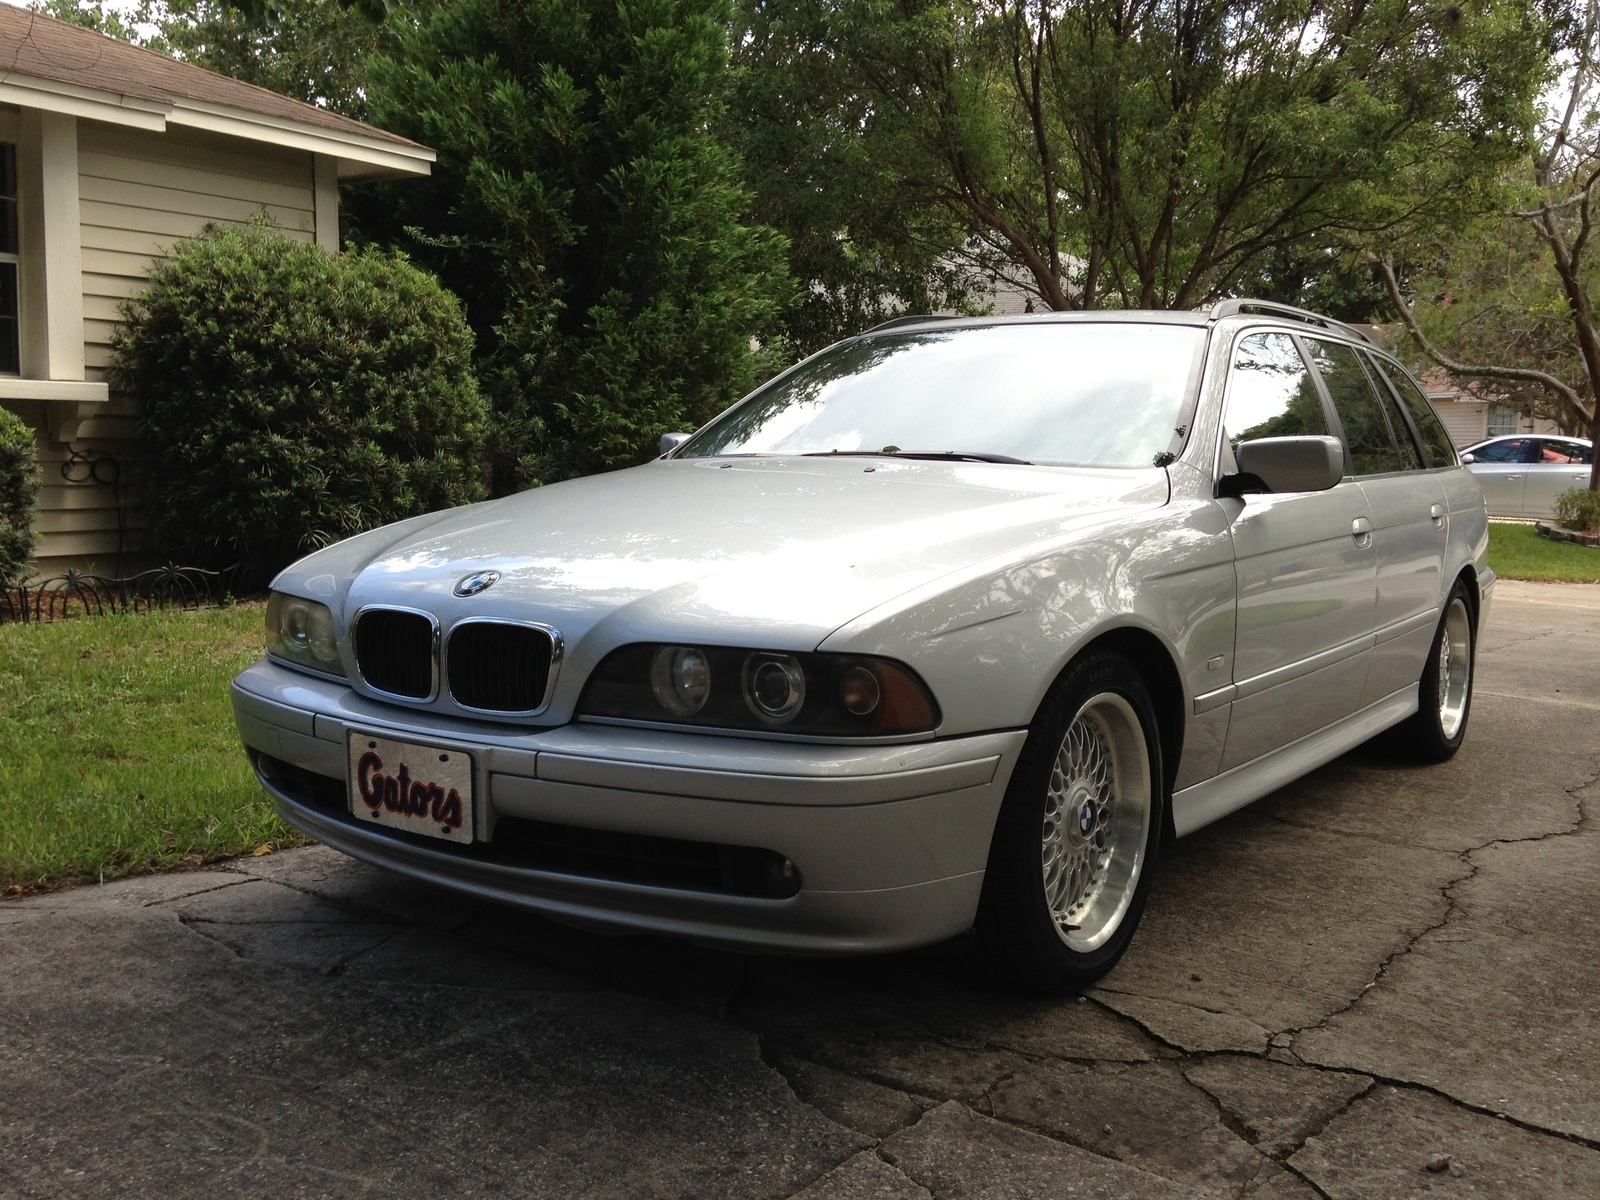 bmw 5 series questions - 2003 bmw 525i sport package with 87,450